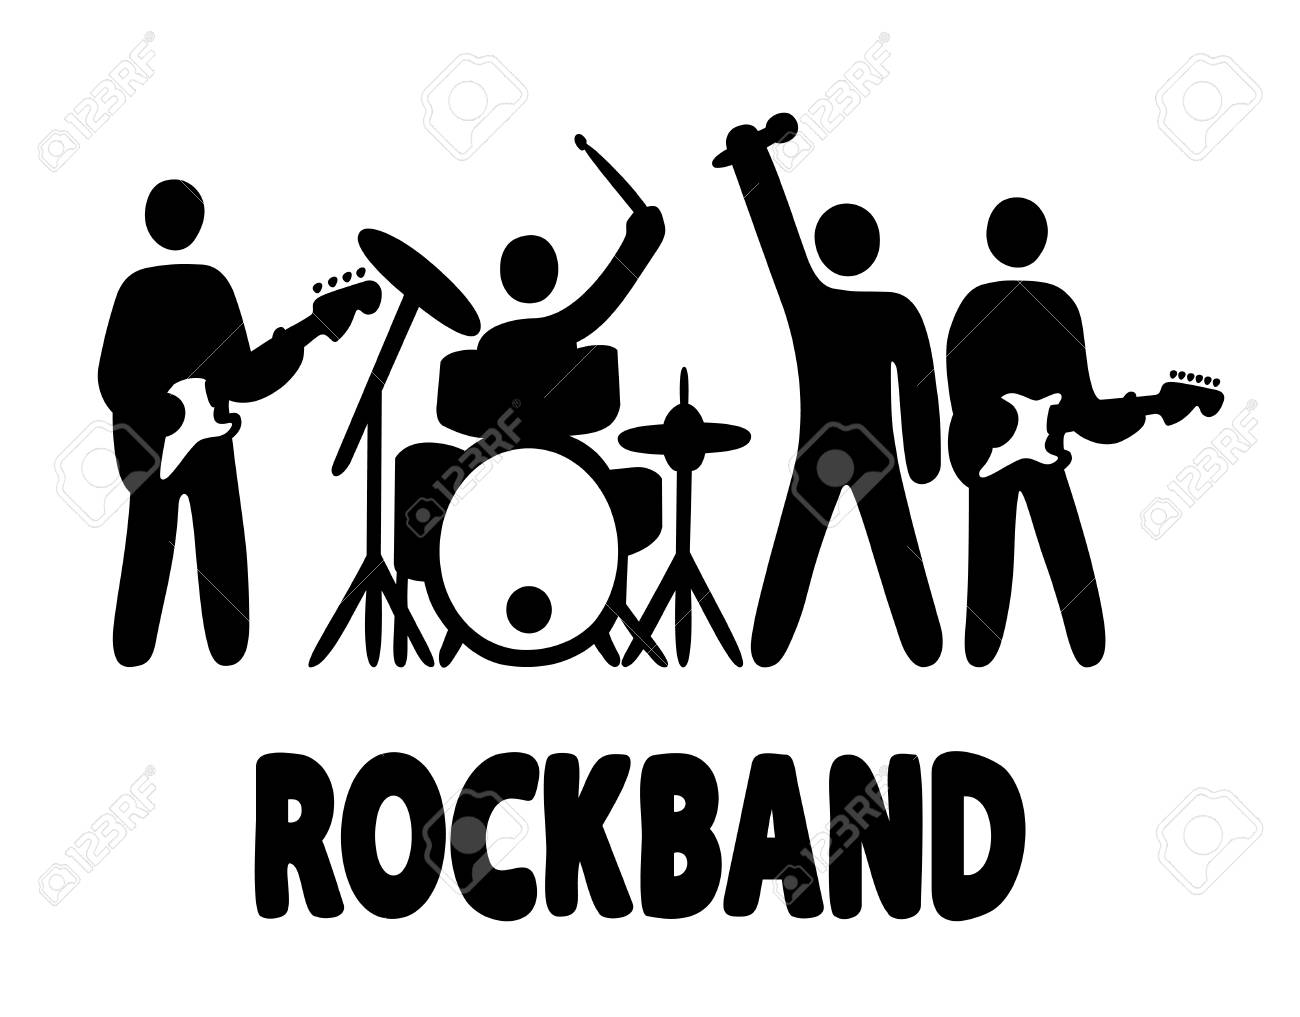 hight resolution of rock band bassist drummer vocalist and guitar player icons simple vector illustration